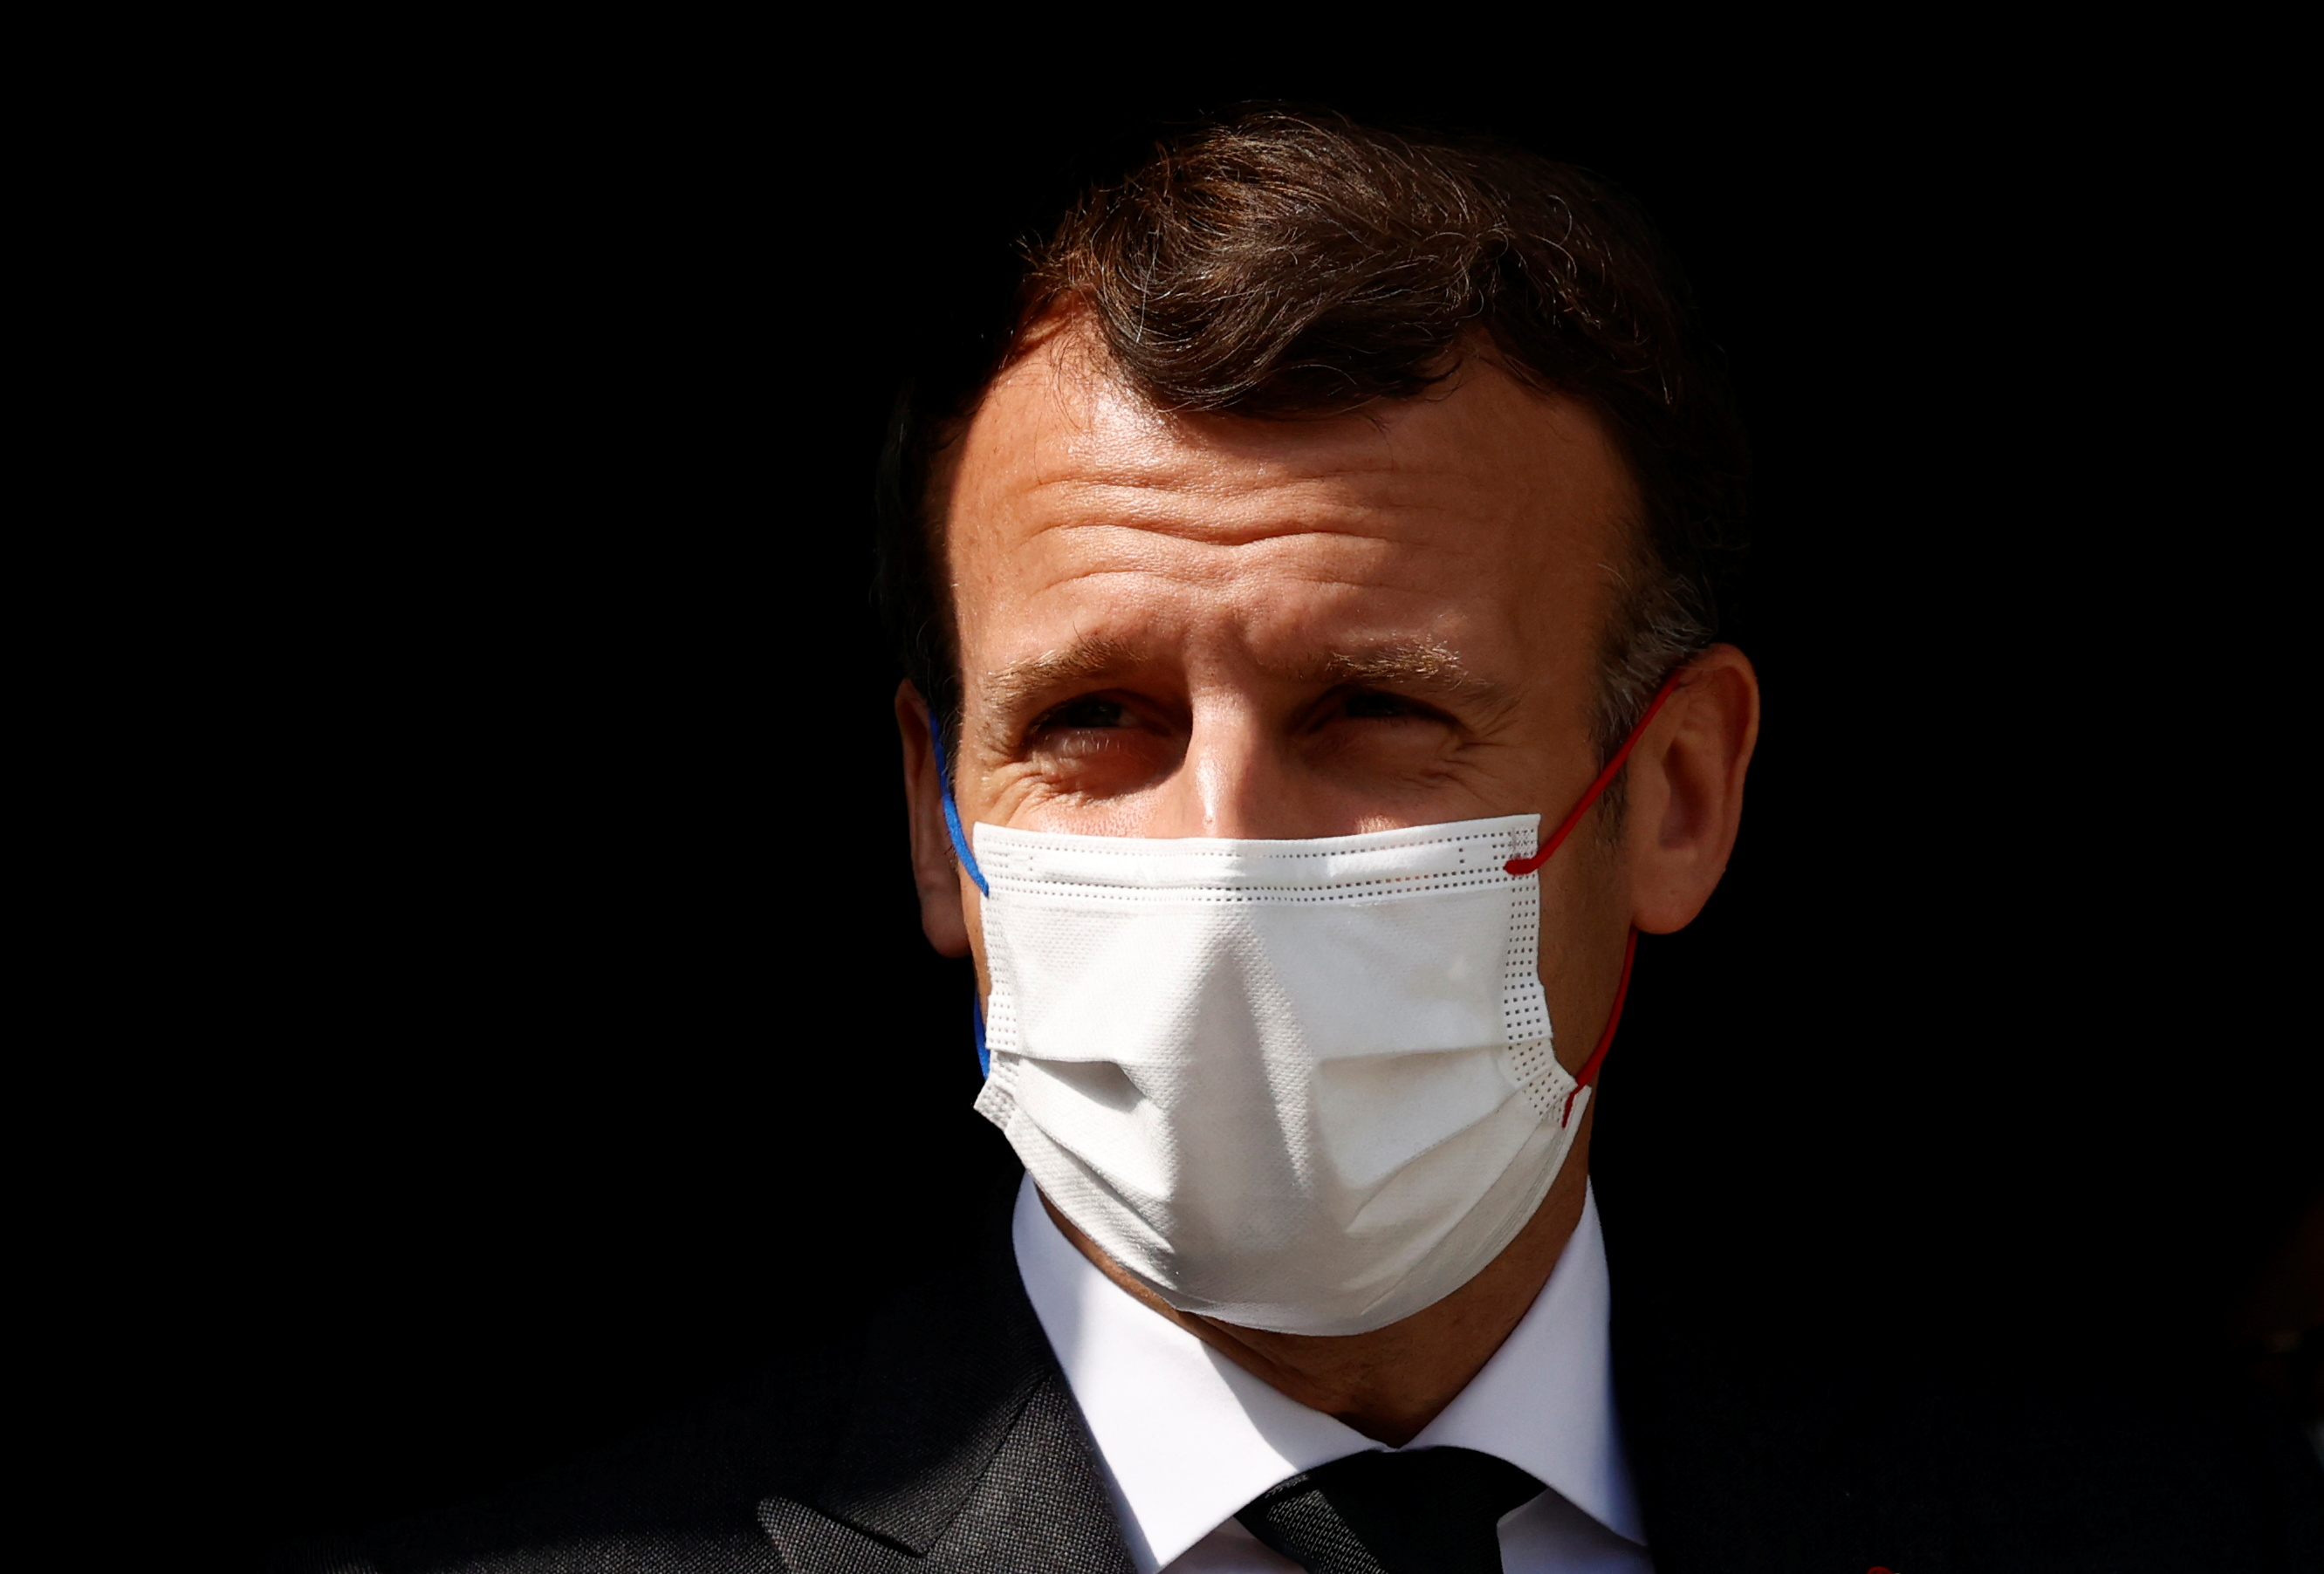 French President Emmanuel Macron, wearing a protective face mask, visits a child psychiatry department at Reims hospital to discuss the psychological impact of the COVID-19 crisis and the lockdown on children and teenagers in France, April 14, 2021.  REUTERS/Christian Hartmann/Pool